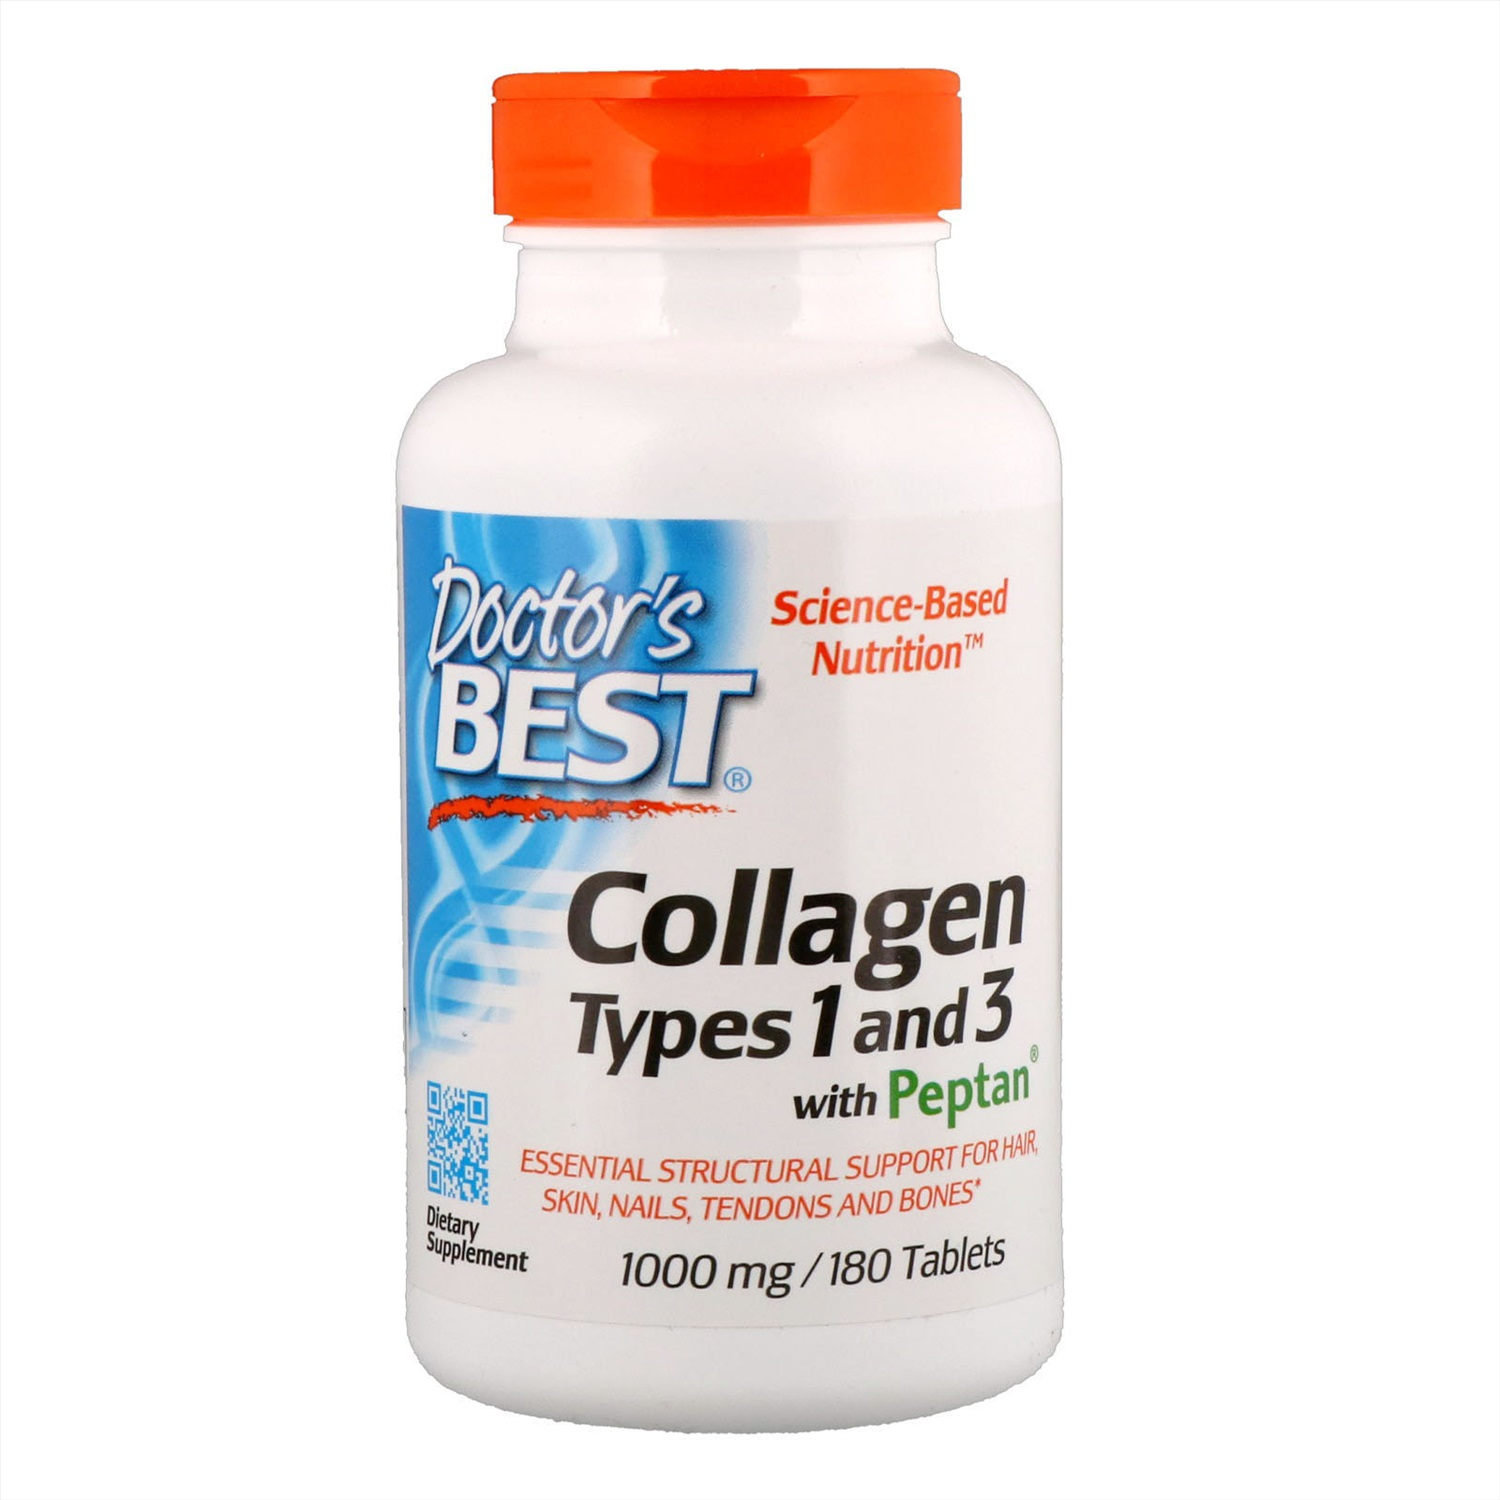 Doctor's Best Best Collagen Коллаген 180 табл.